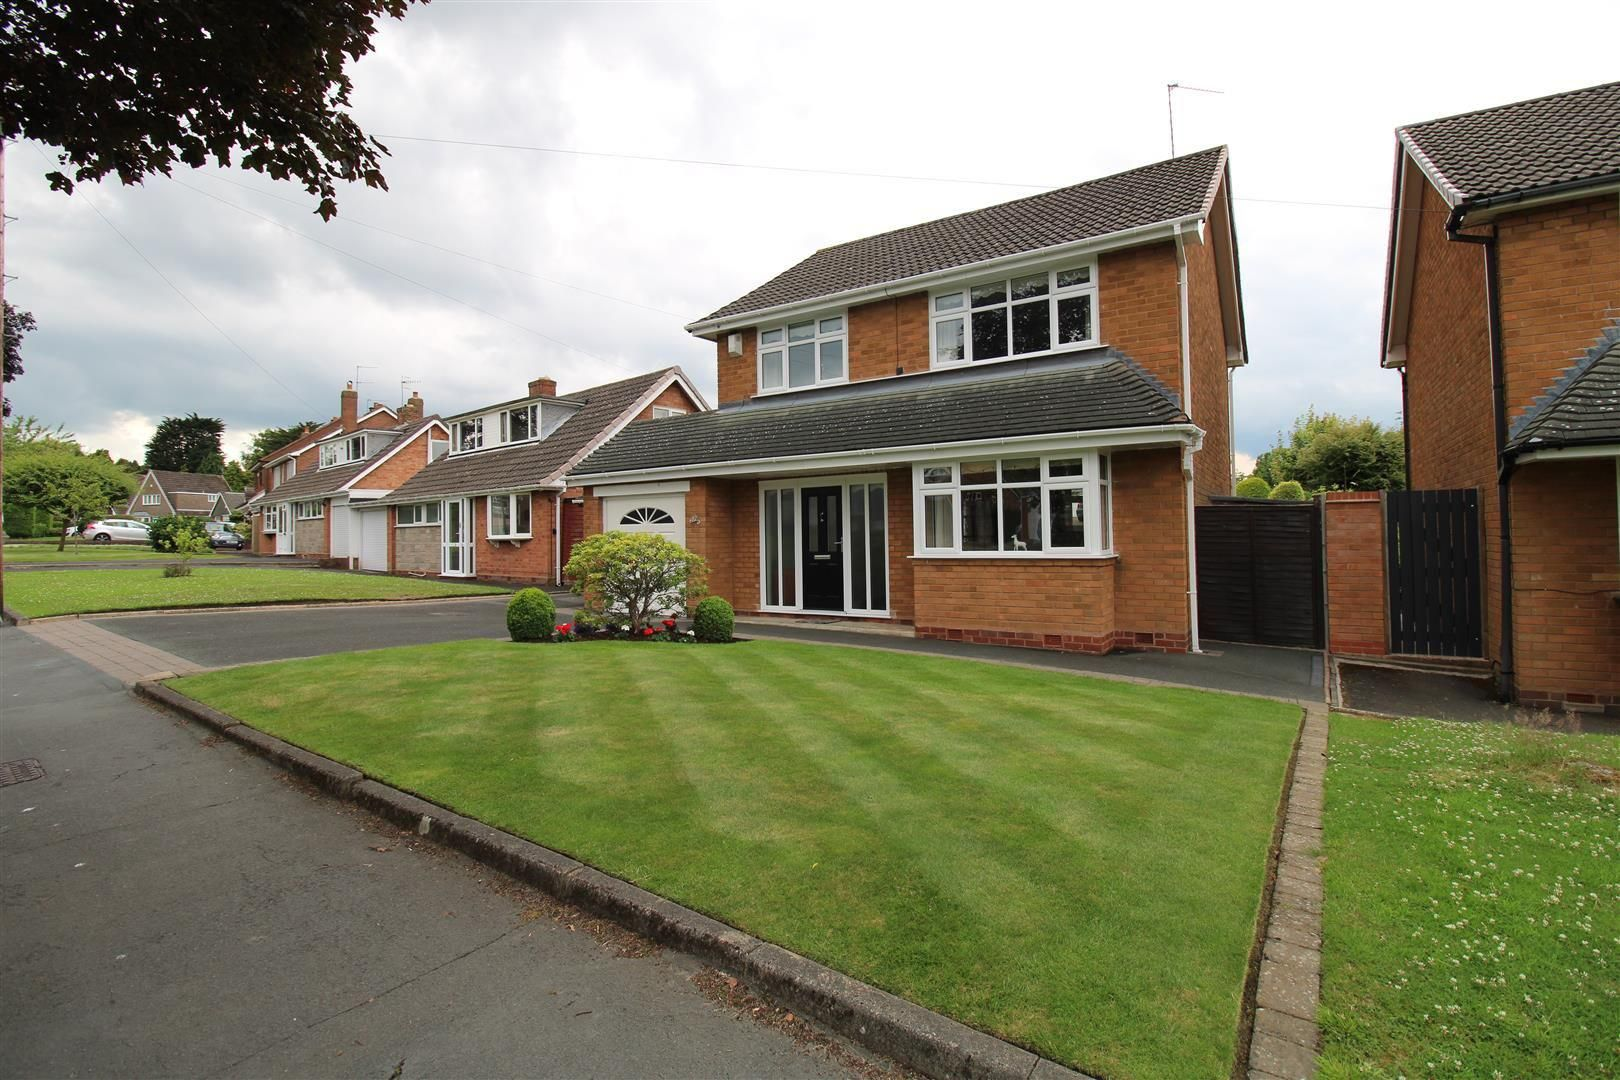 3 bed detached for sale in Pedmore  - Property Image 24